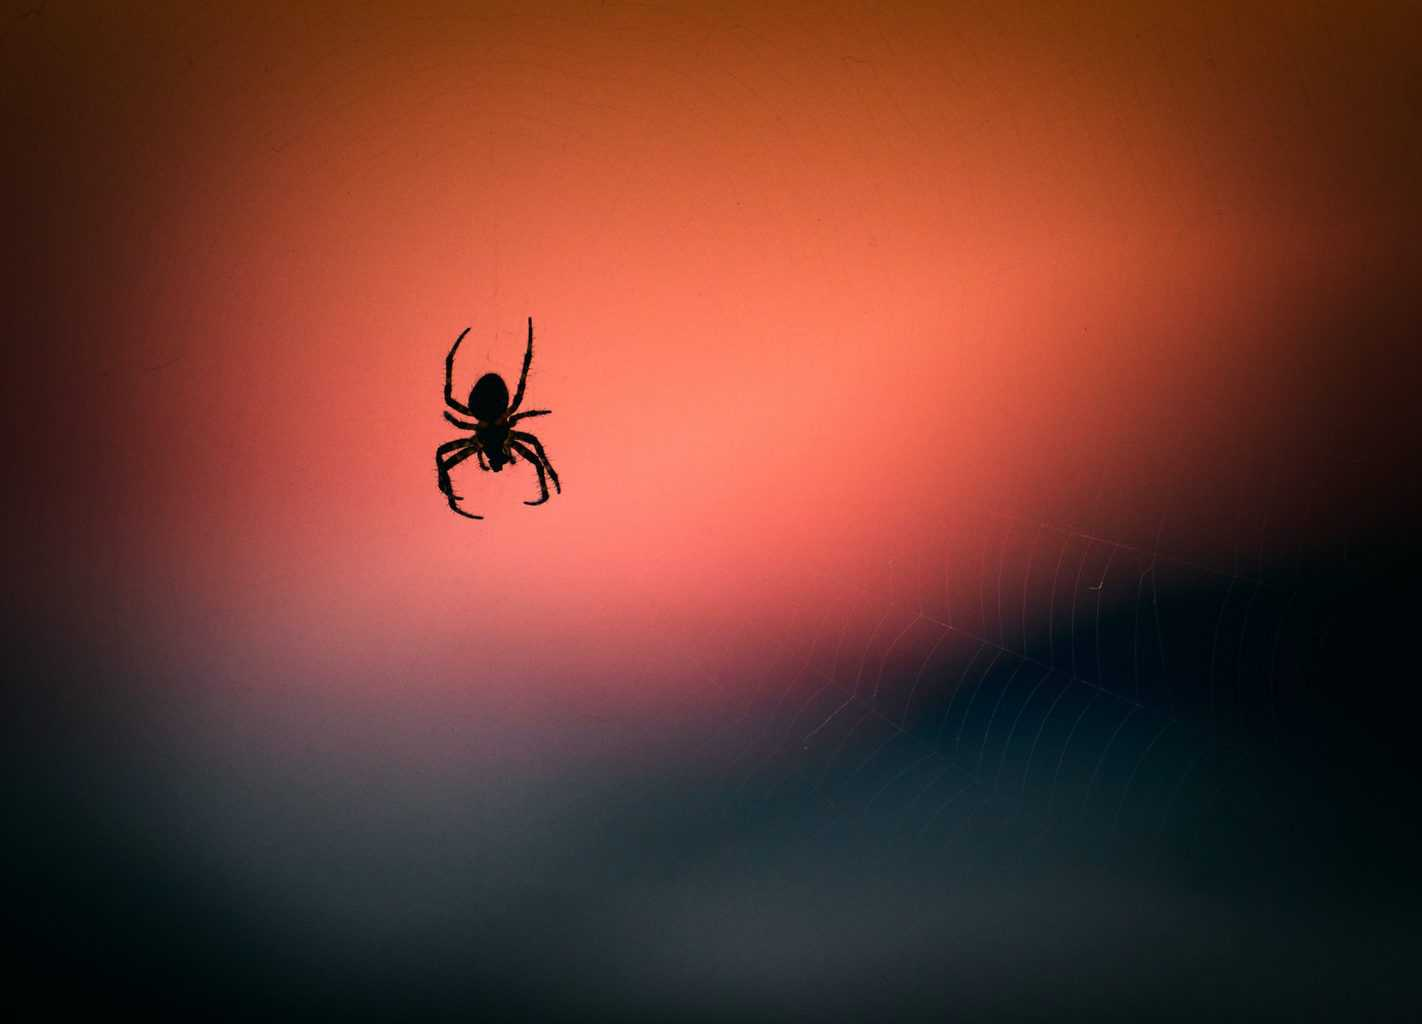 Why am I so paranoid about spiders? (Arachnophobia)